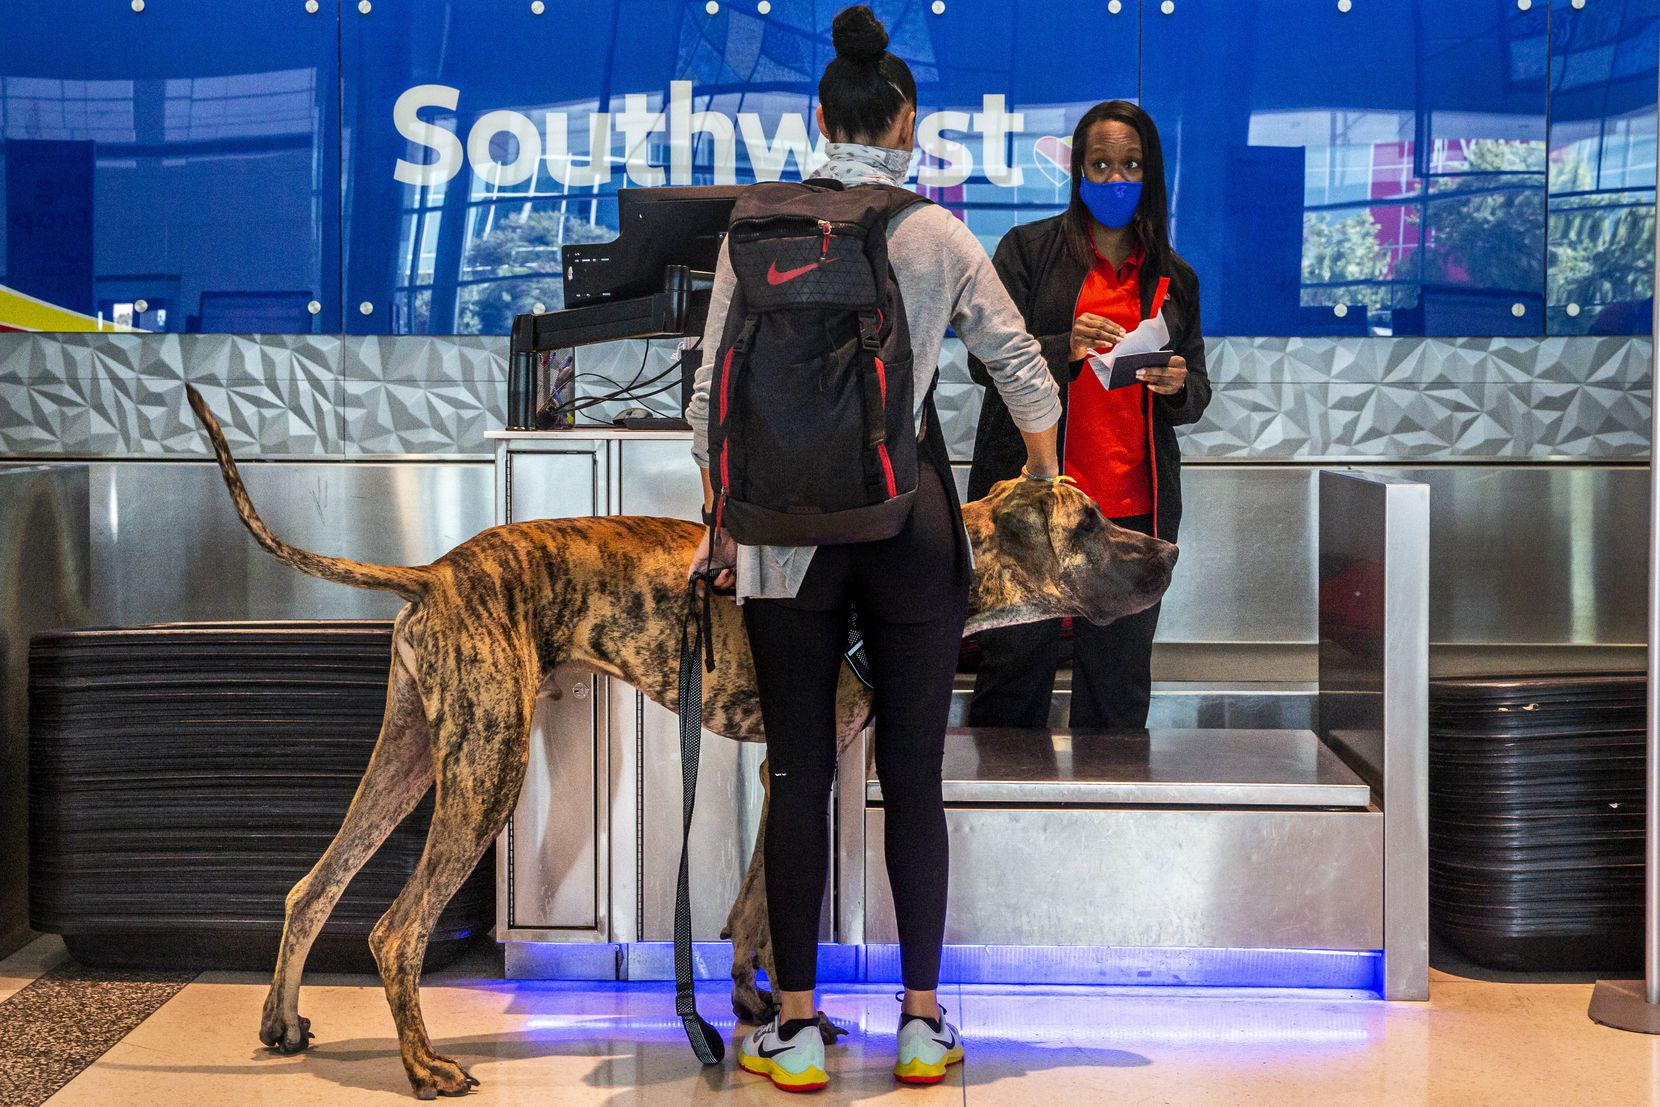 Southwest Airlines employee Ericka Thompson appeared to not know what to think in early October when Jennifer Melchionne of Houston and her great Dane, Blue, checked in for a flight at Dallas Love Field.